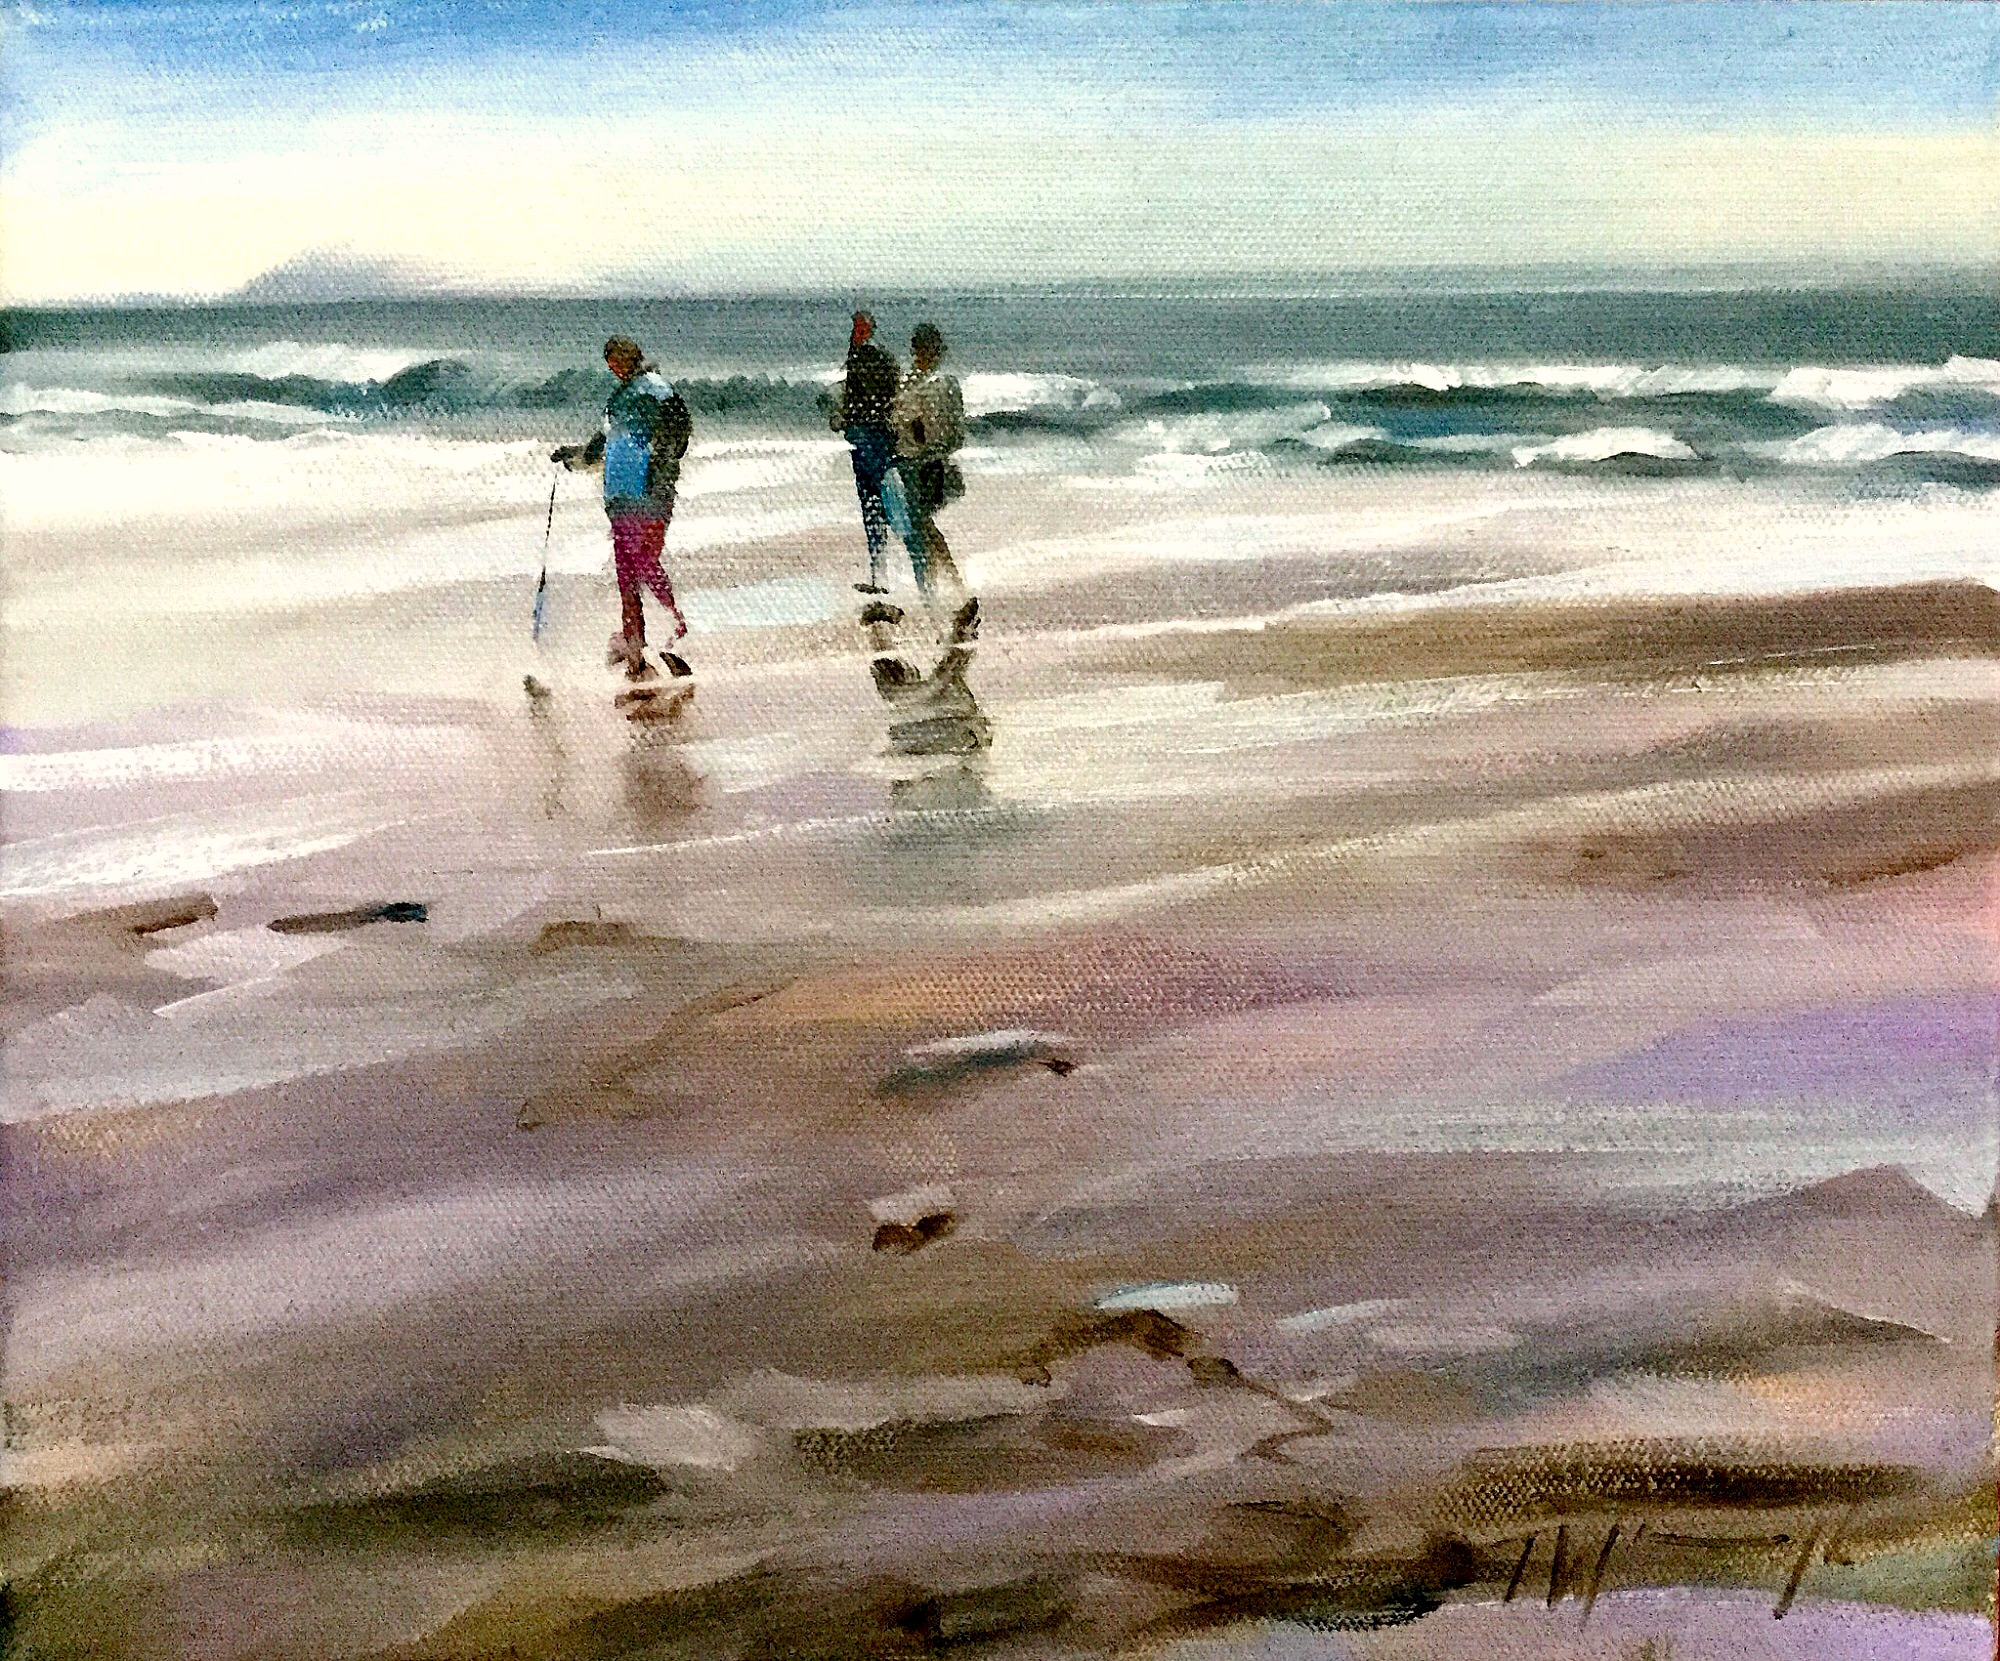 Beach walk, original art by Trevor Waugh